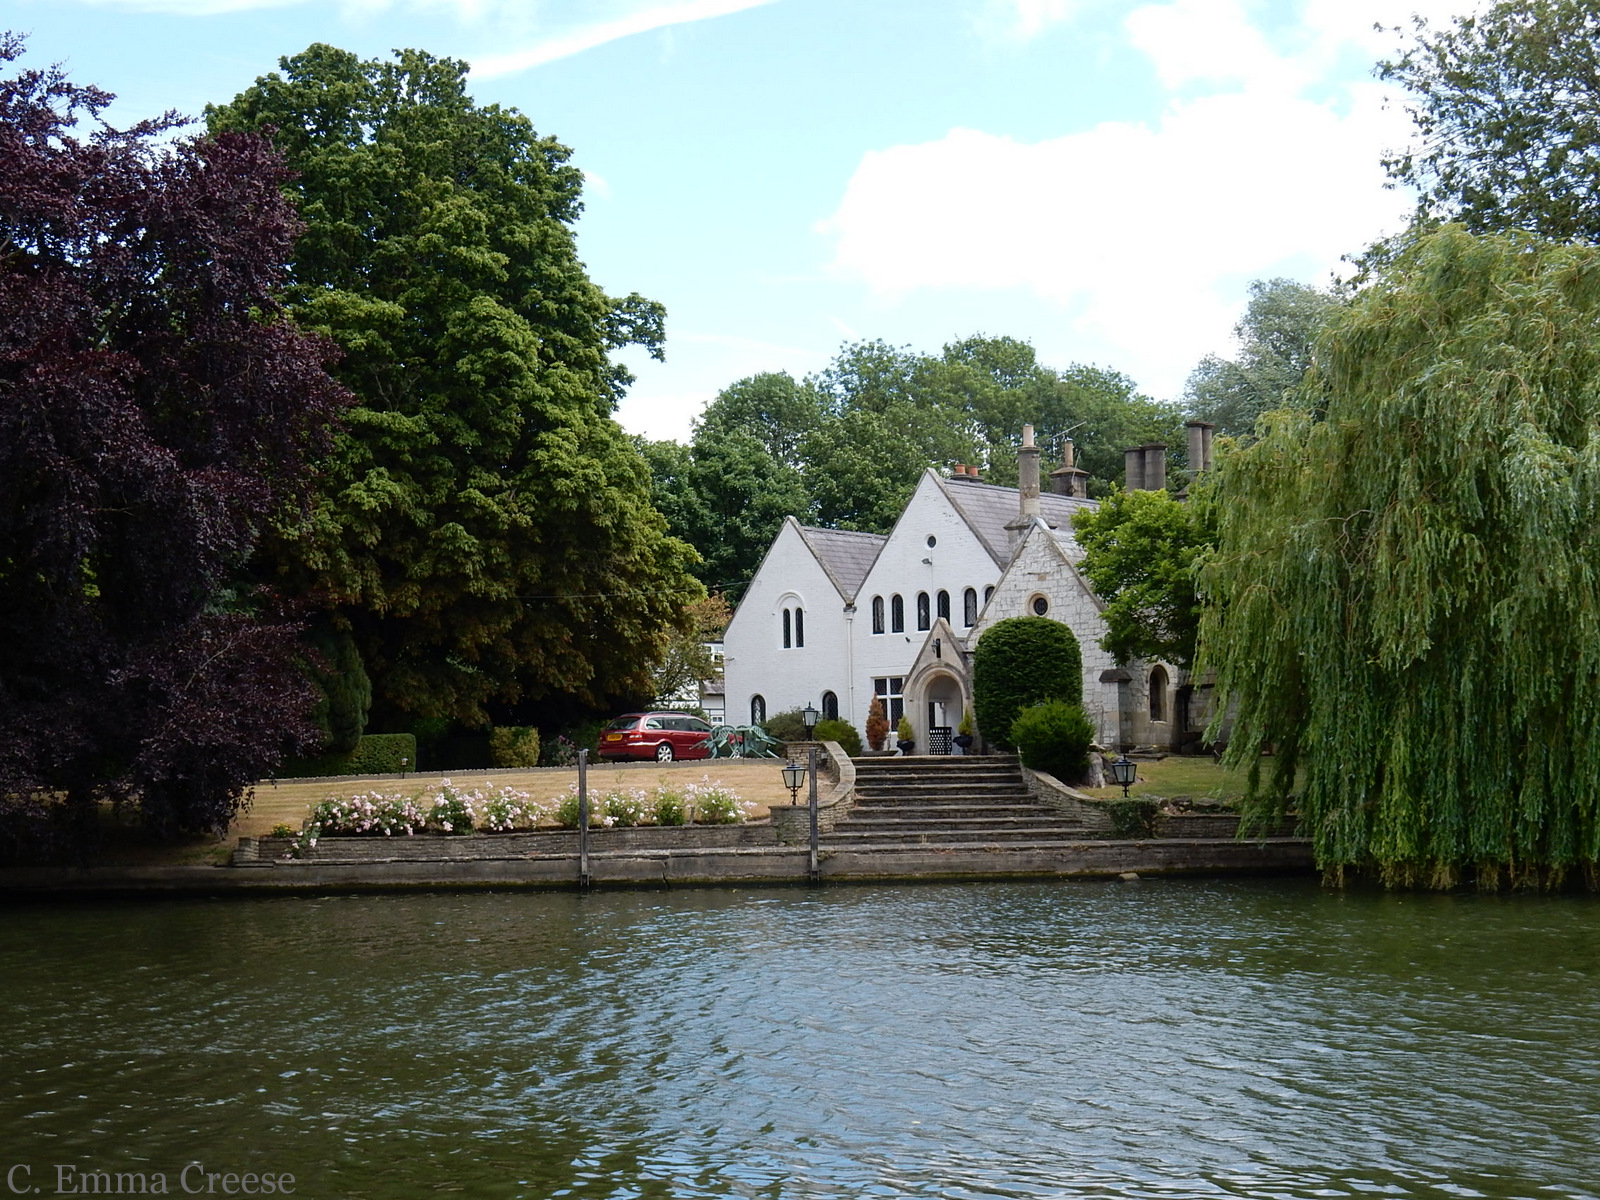 Things to do in the UK: take a boat ride along the Thames River